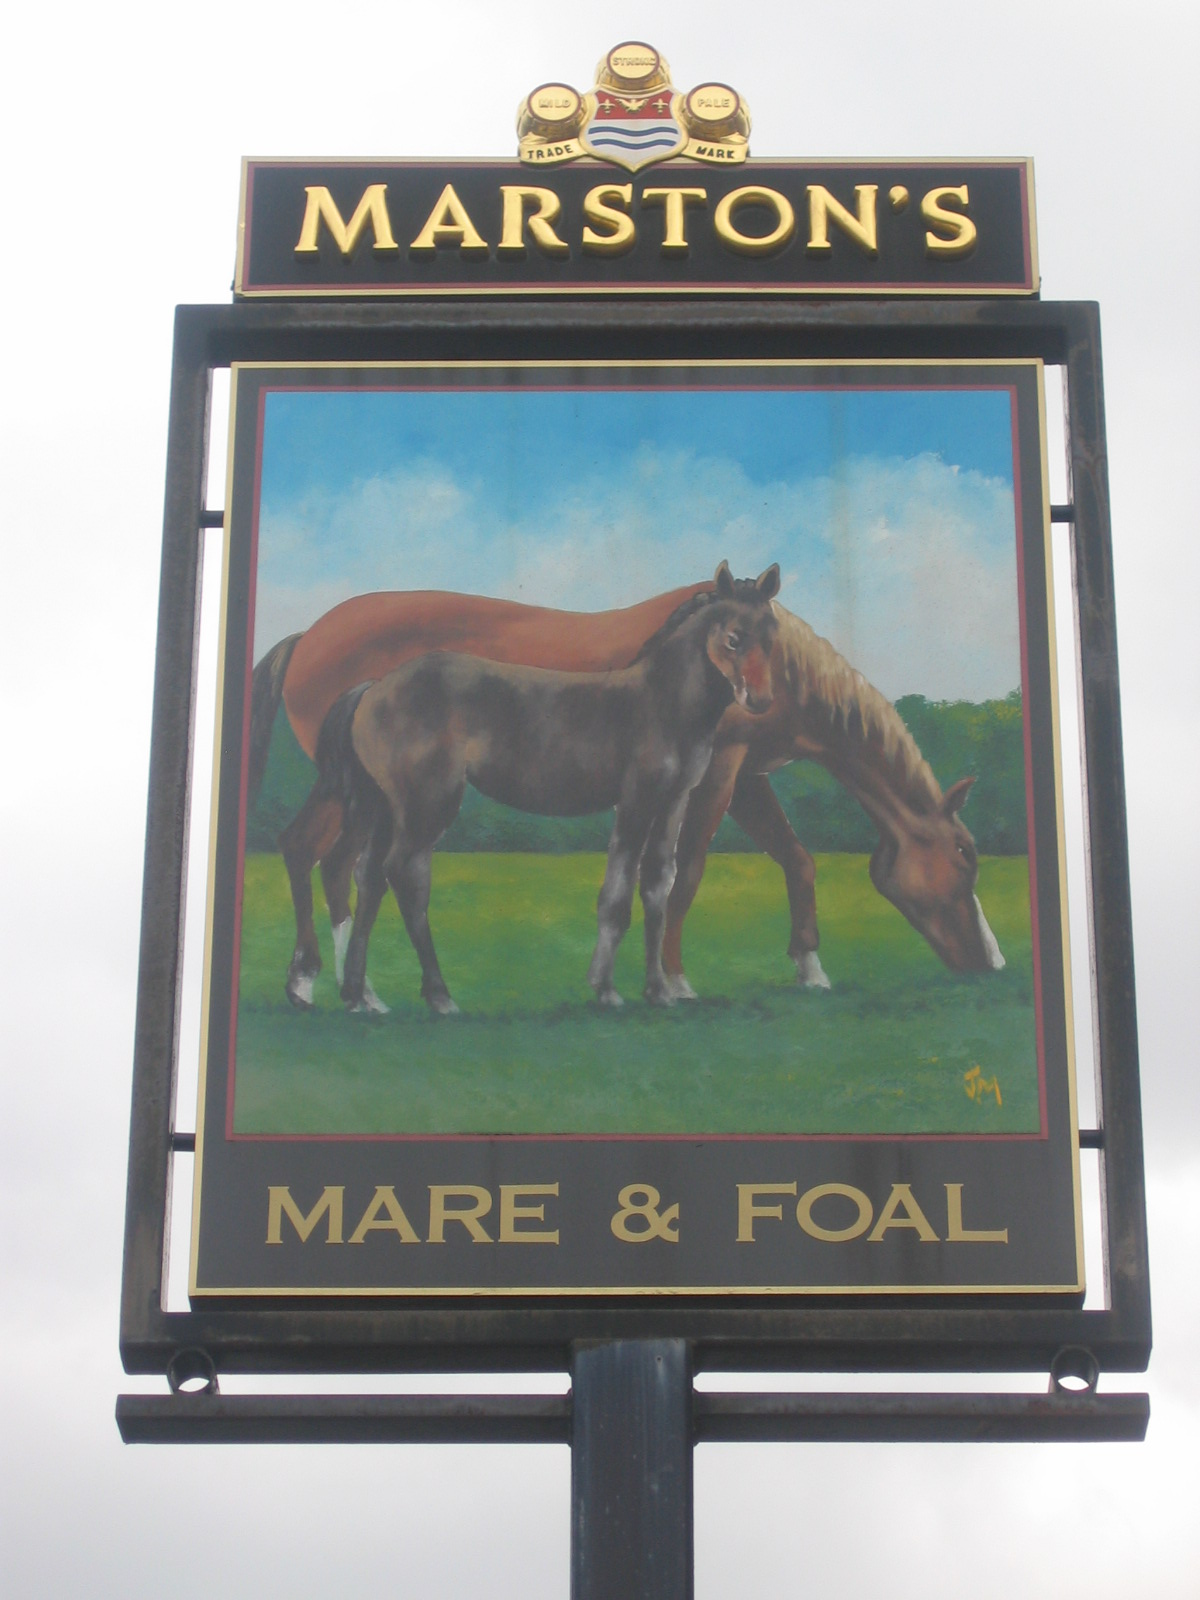 Pub sign Photo study - The Mare and Foal, Failsworth, Manchester - taken by me